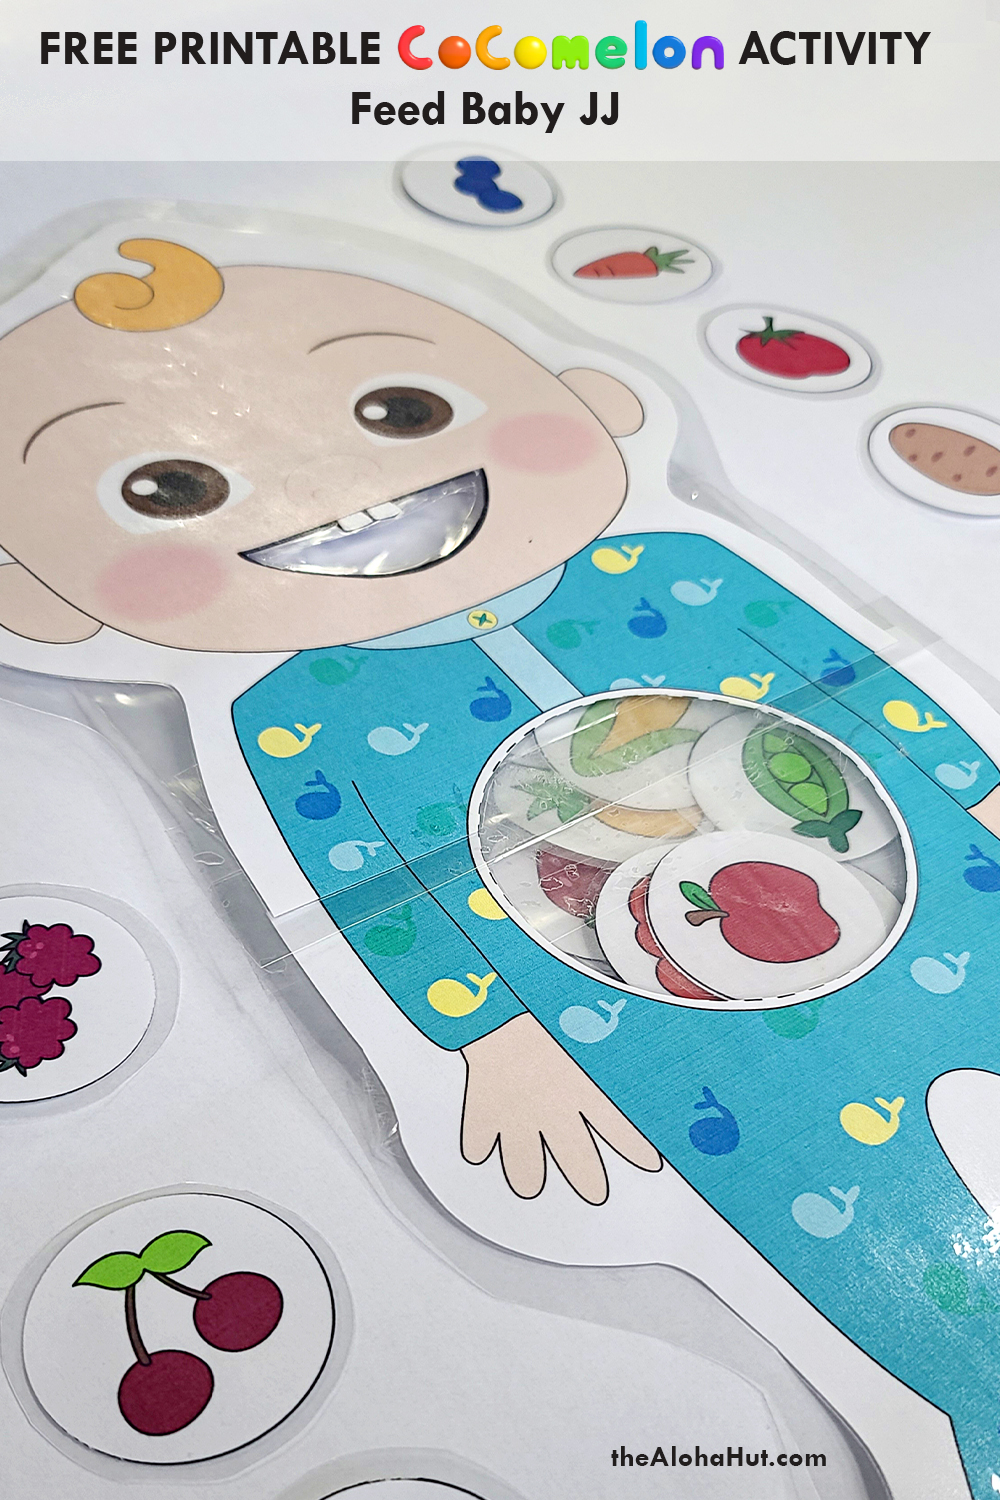 cocomelon feed baby JJ activity free printable 4 by the Aloha Hut